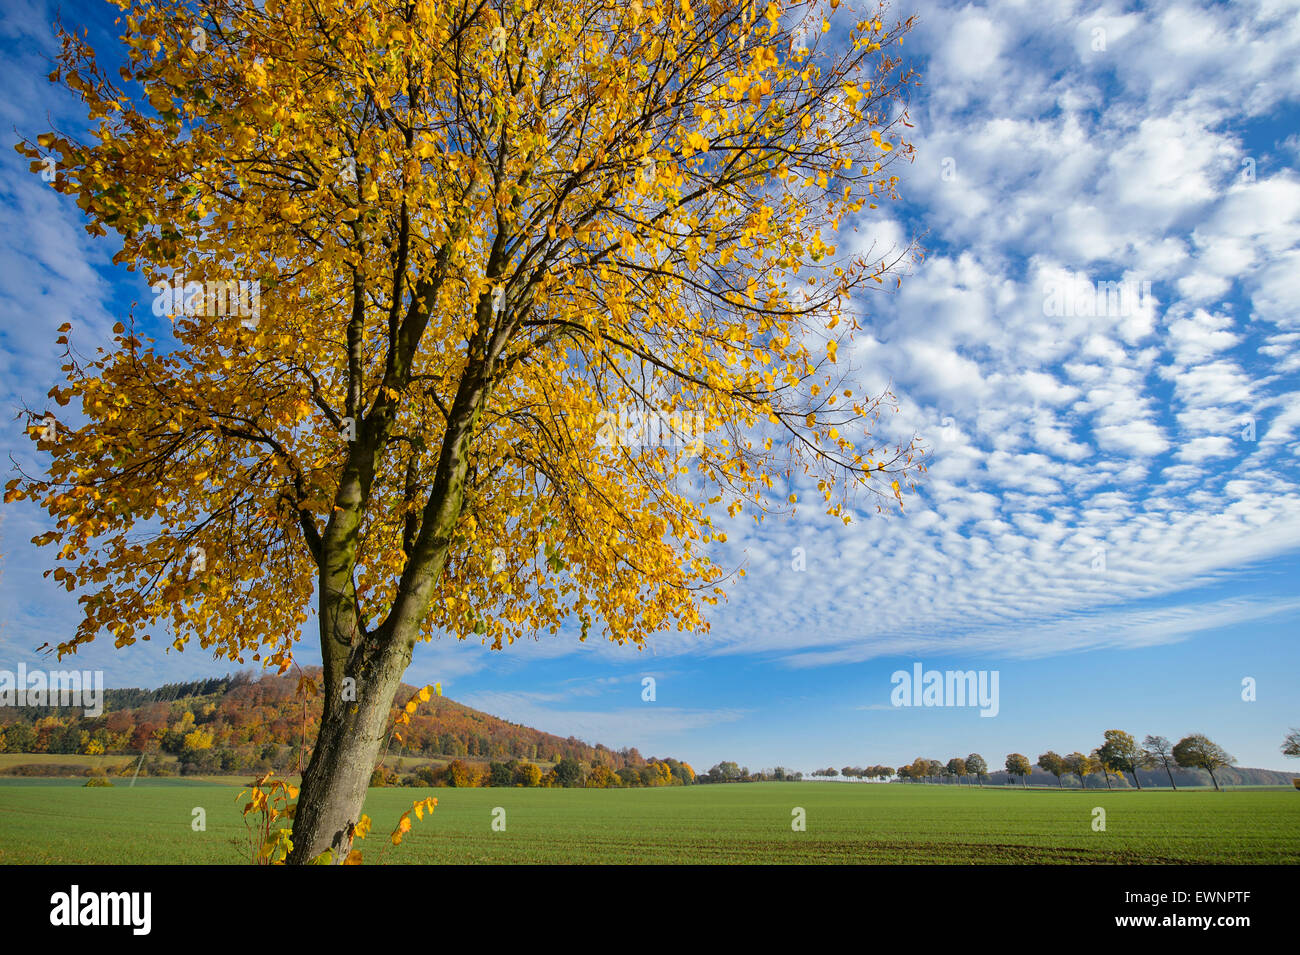 lime tree in autumn, weser uplands, bodenwerder, lower saxony, germany - Stock Image